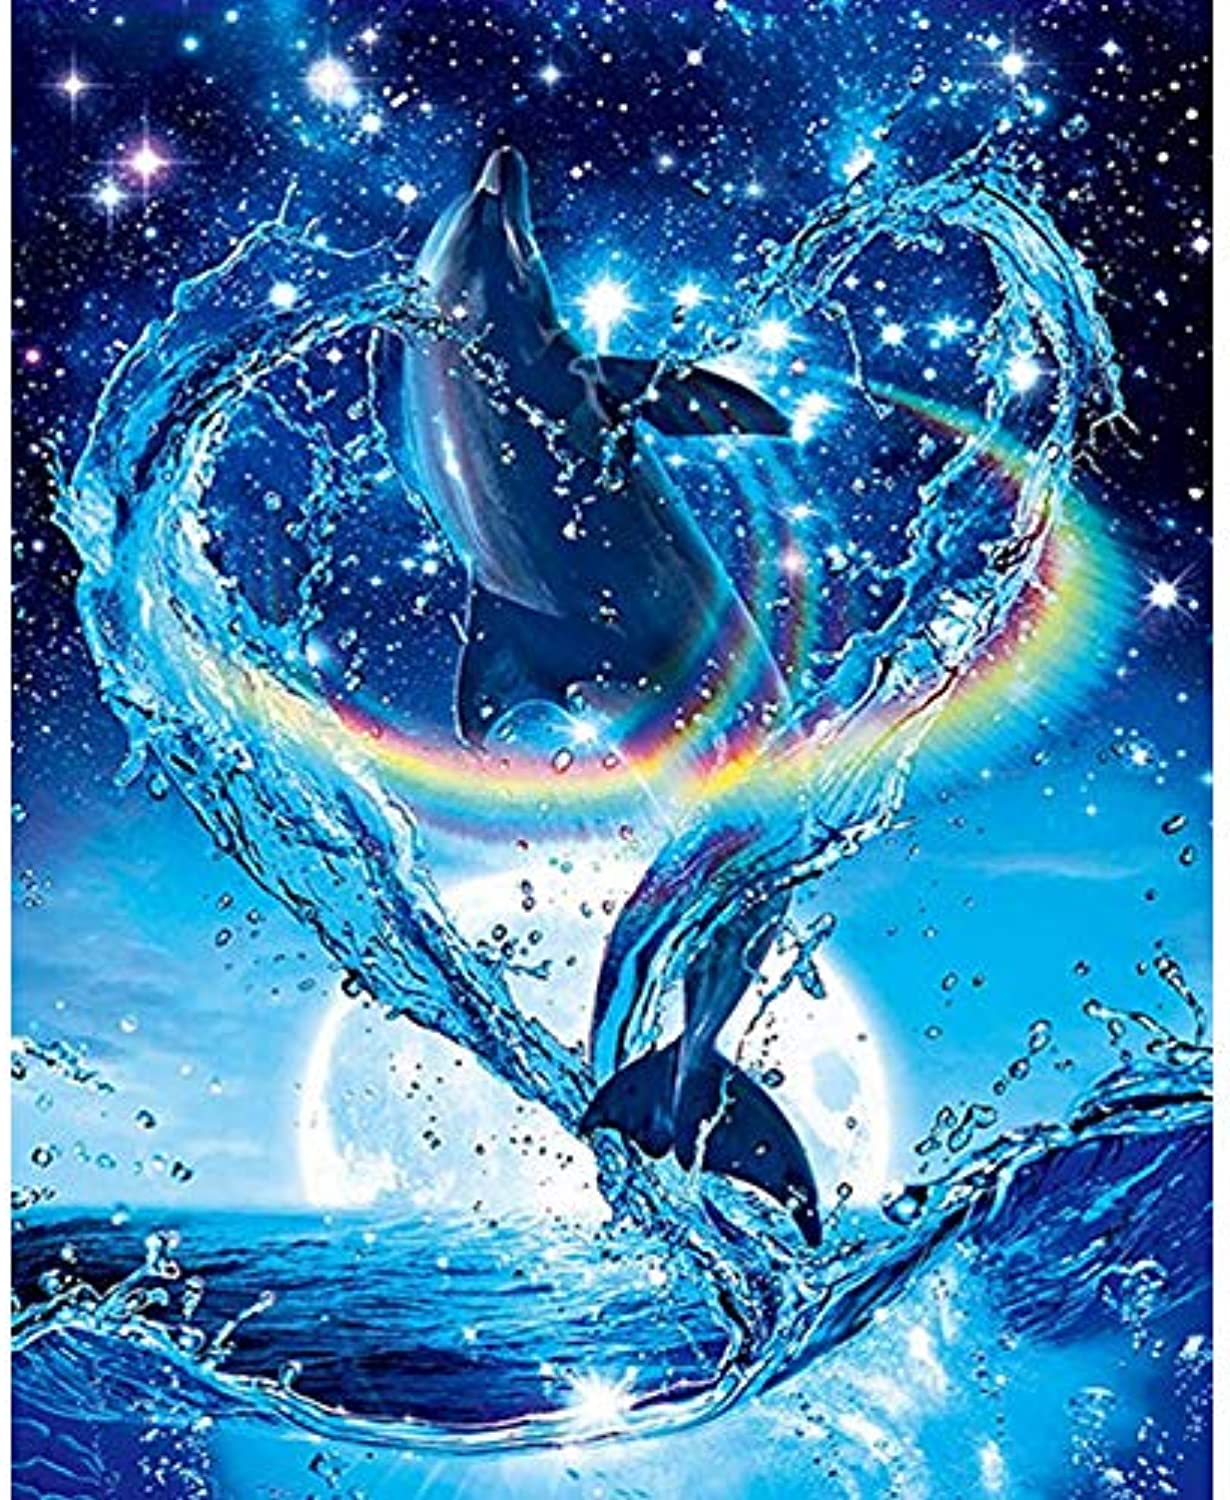 Diy Oil Painting Paint By Number Kit,Marine Animal Dolphin,Gift 16''X20'' Inch